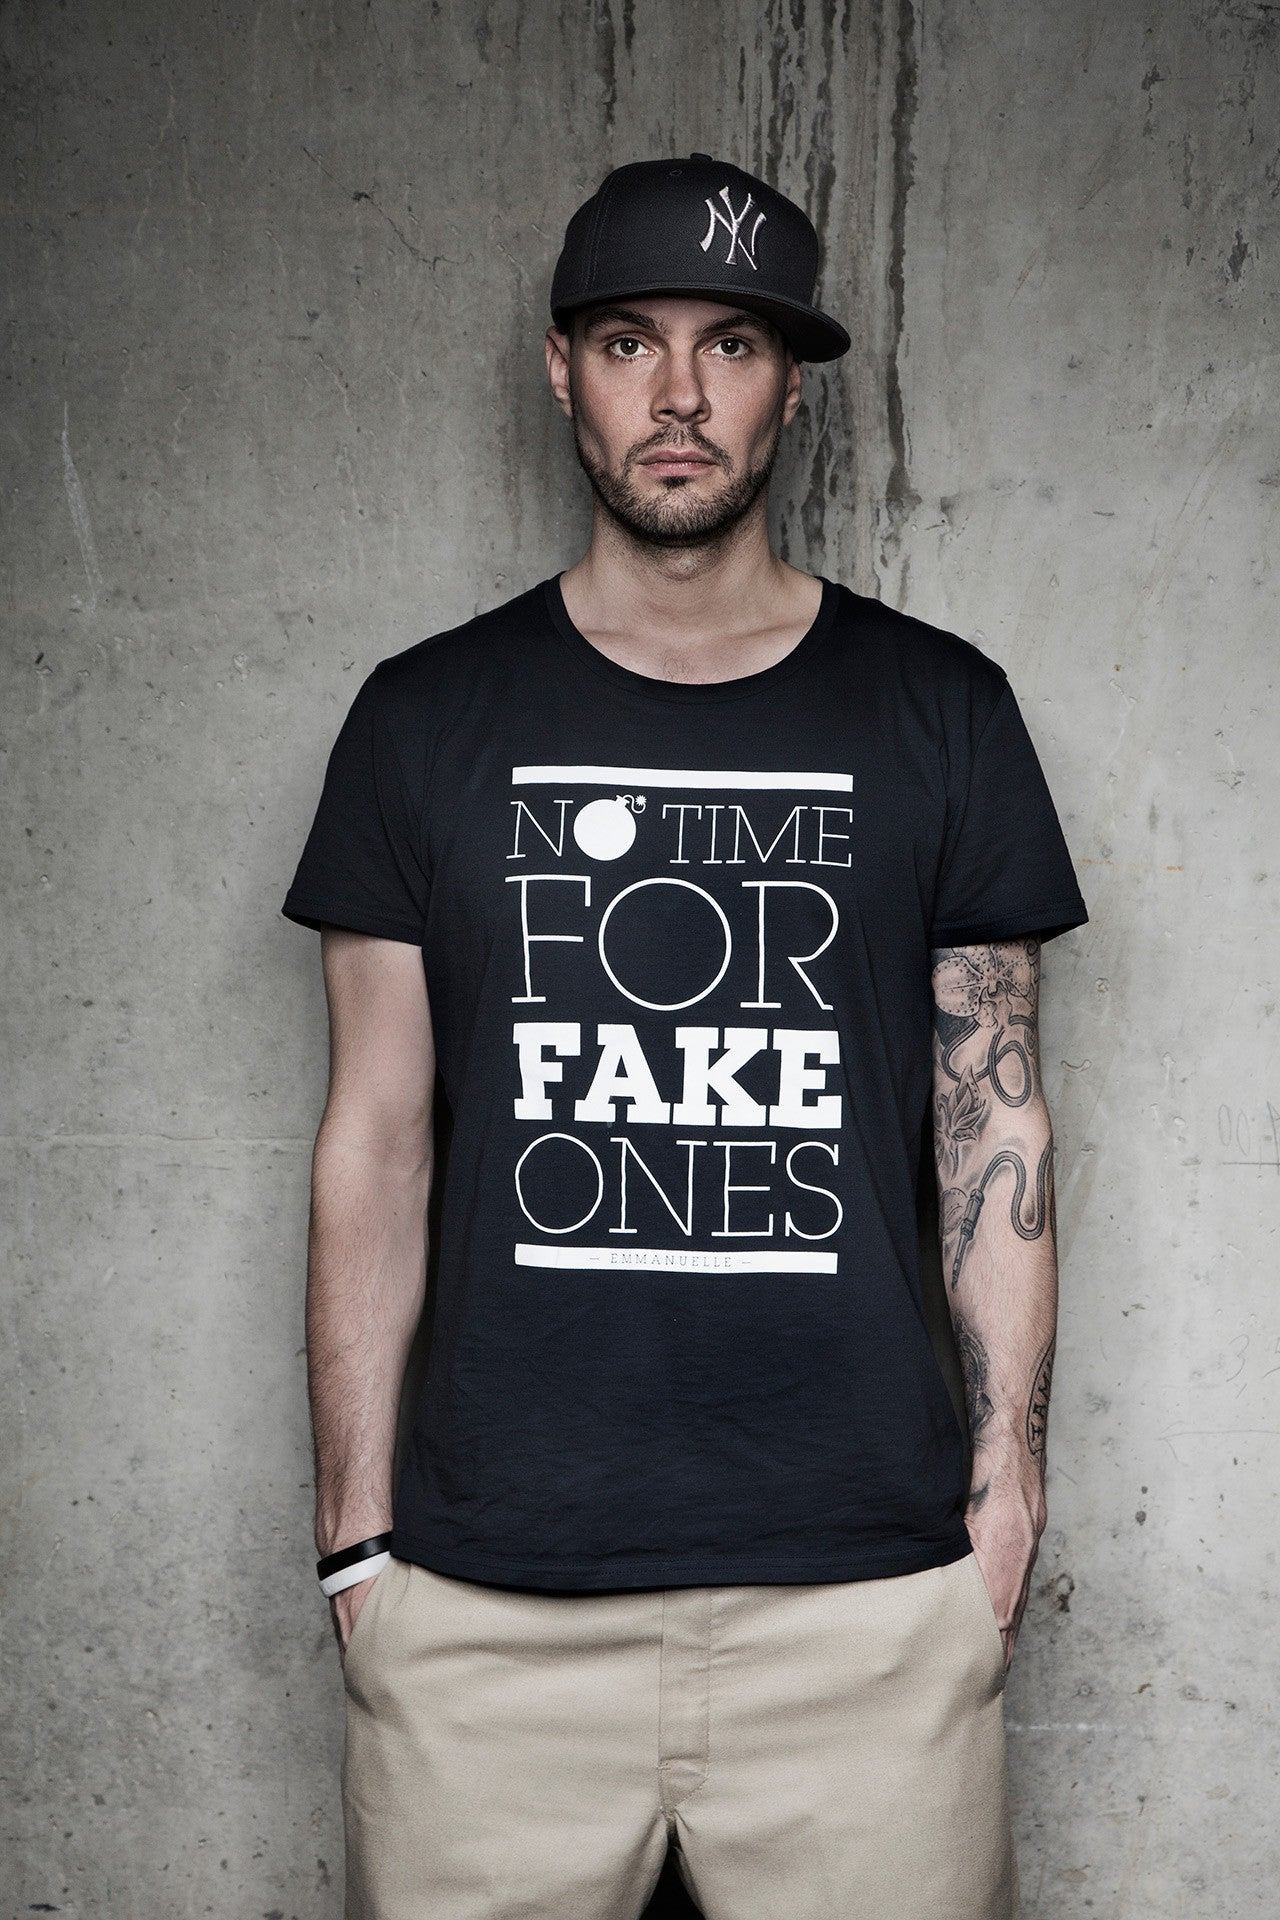 No Time For Fake Ones – Shirt